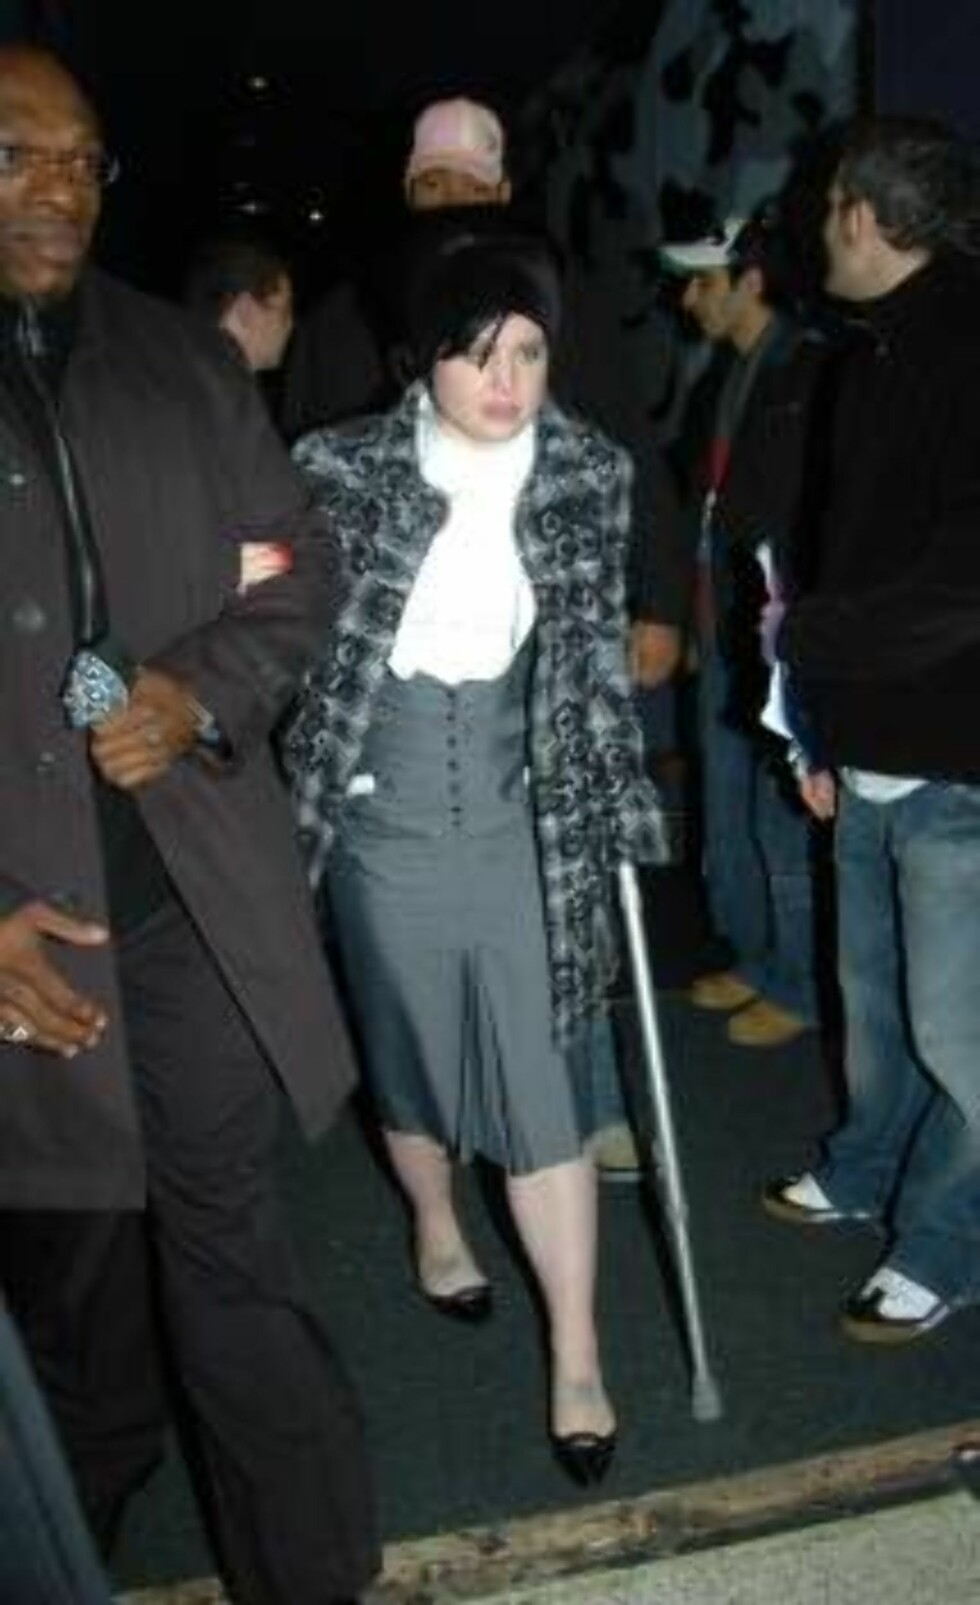 LONDON 051120 - Kelly and Jack Osbourne leaving the afterparty for the T4 Poll Winners? Party. Kelly, walking with the aid of crutches, seemed to be in some pain, much to Jack's concern.  Photo: Jambala/YD Image Code: 4028  COPYRIGHT STELLA PICTURES Foto: Stella Pictures